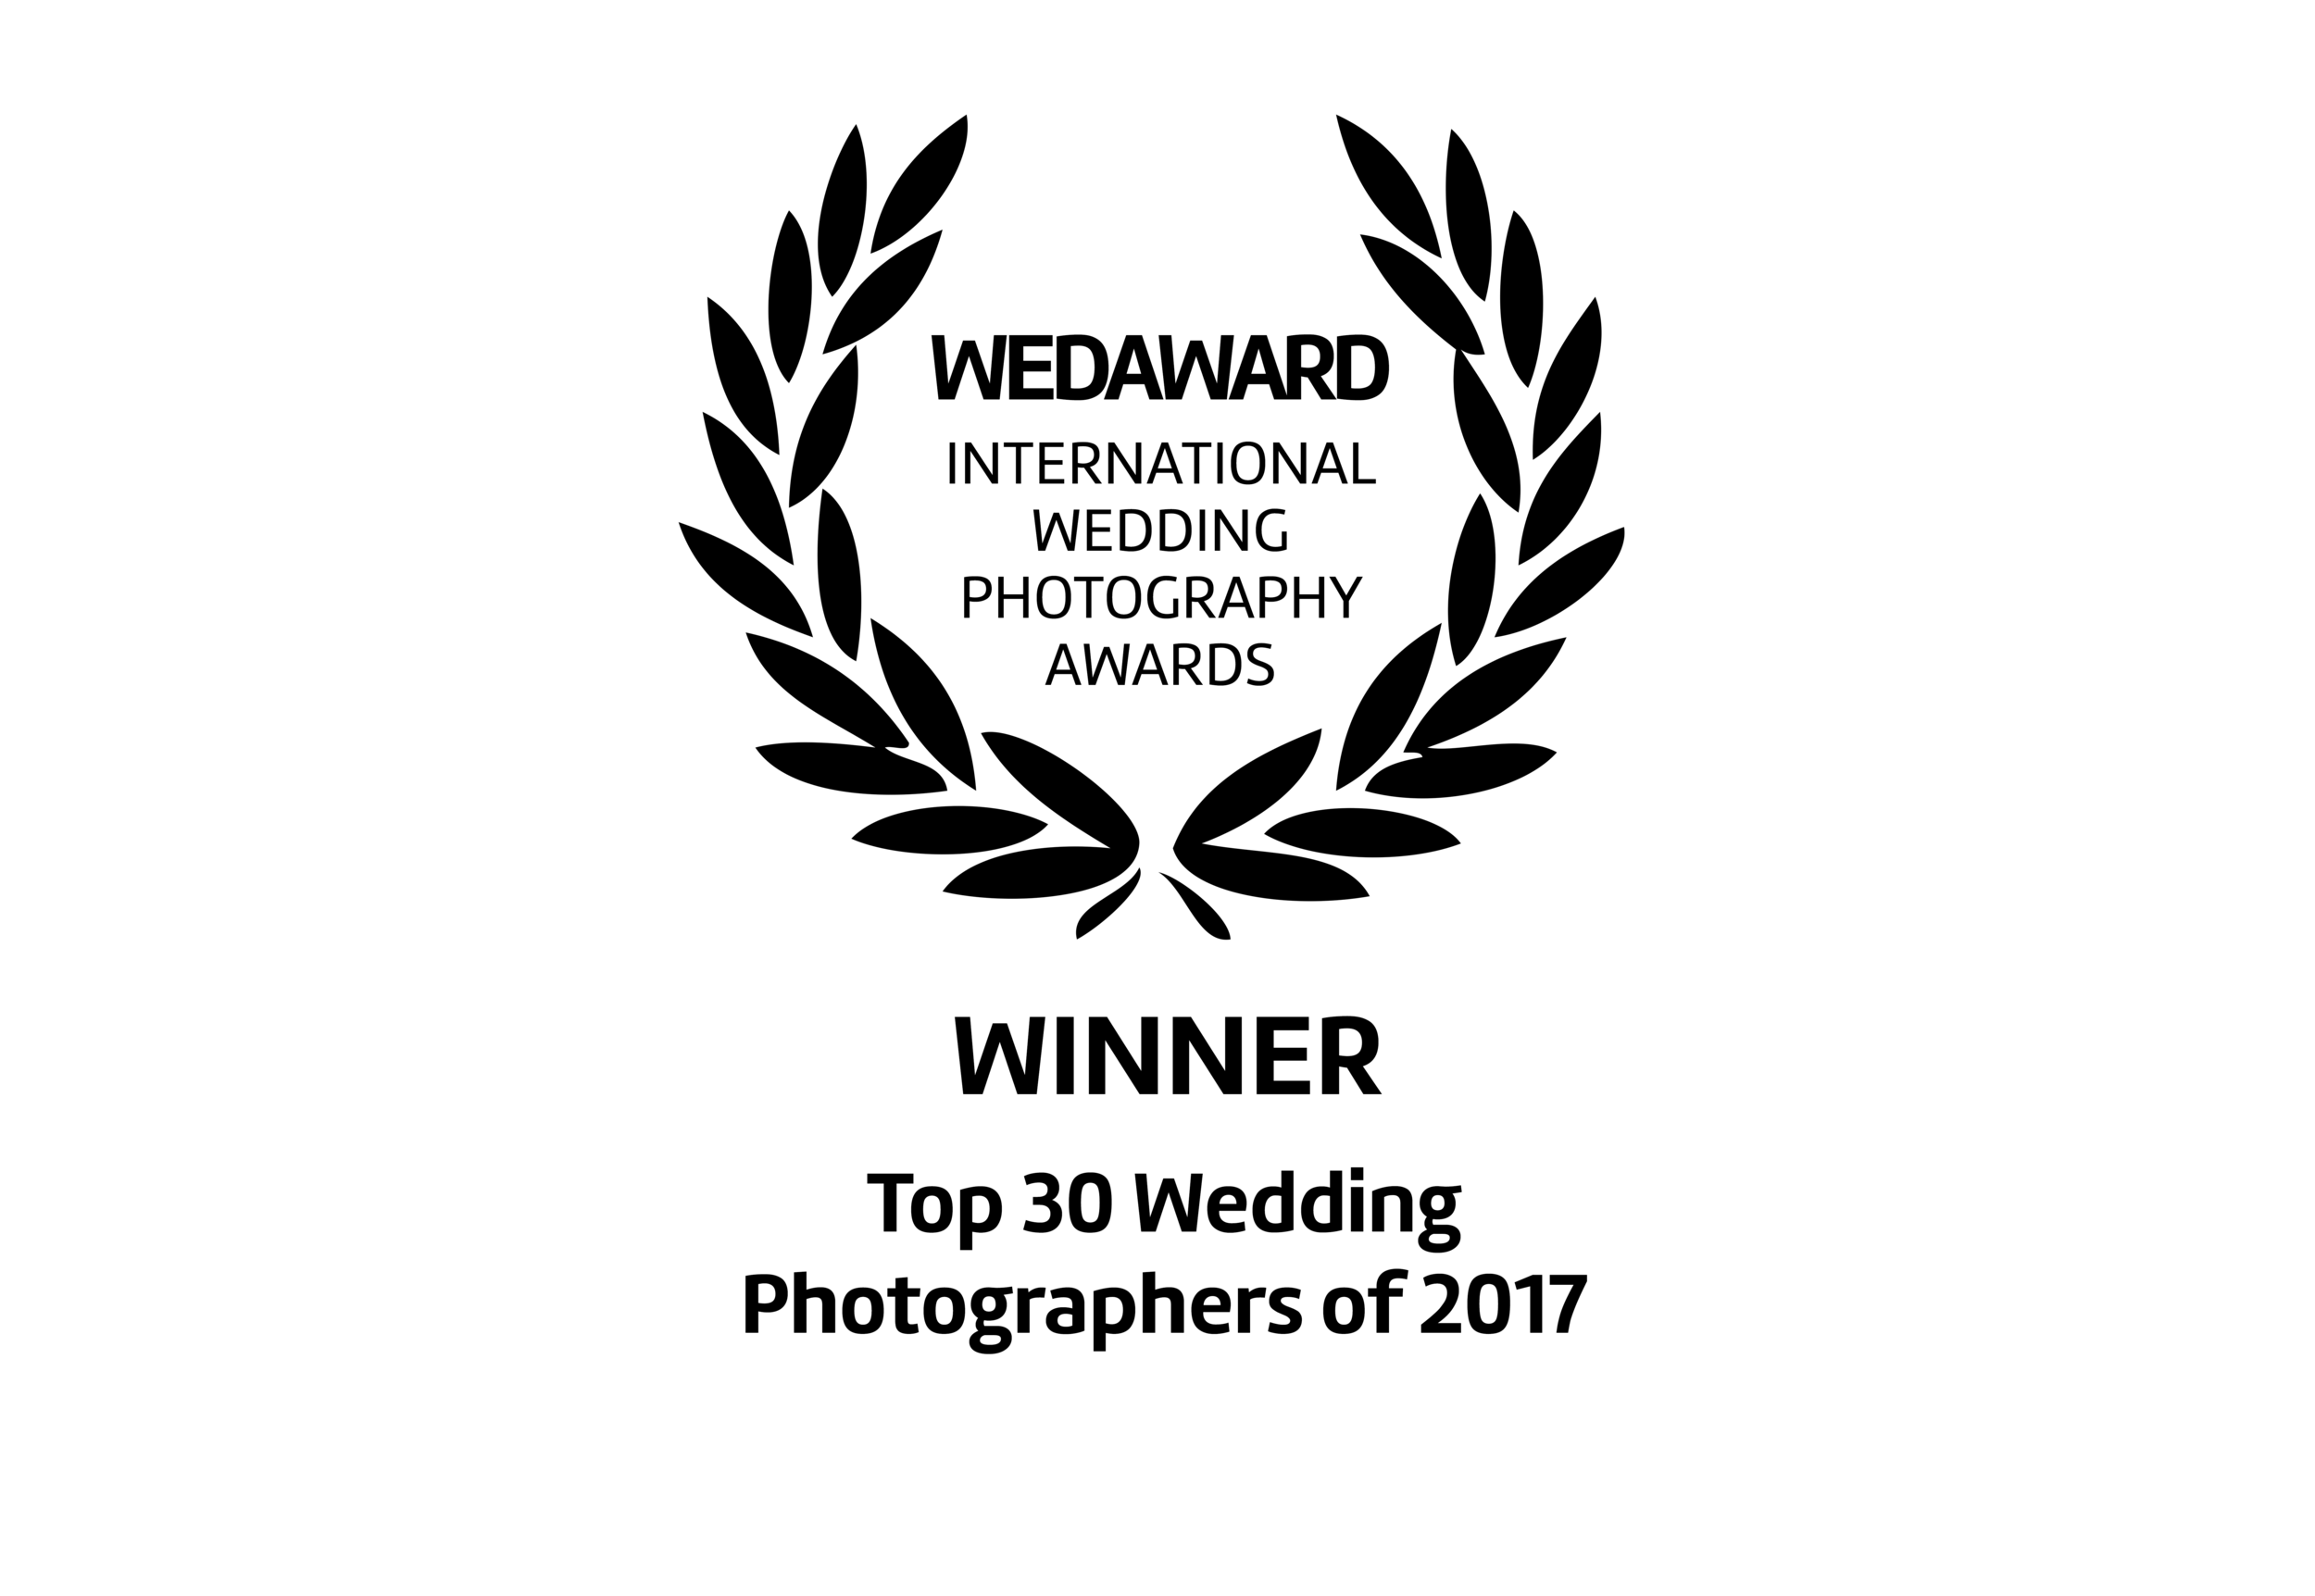 gavin conlan photography Ltd is featured in the Top-30 International Wedding Photographers of 2017, winning 24 international wedding photography awards, ranking first in the United Kingdom and 4th in the World.